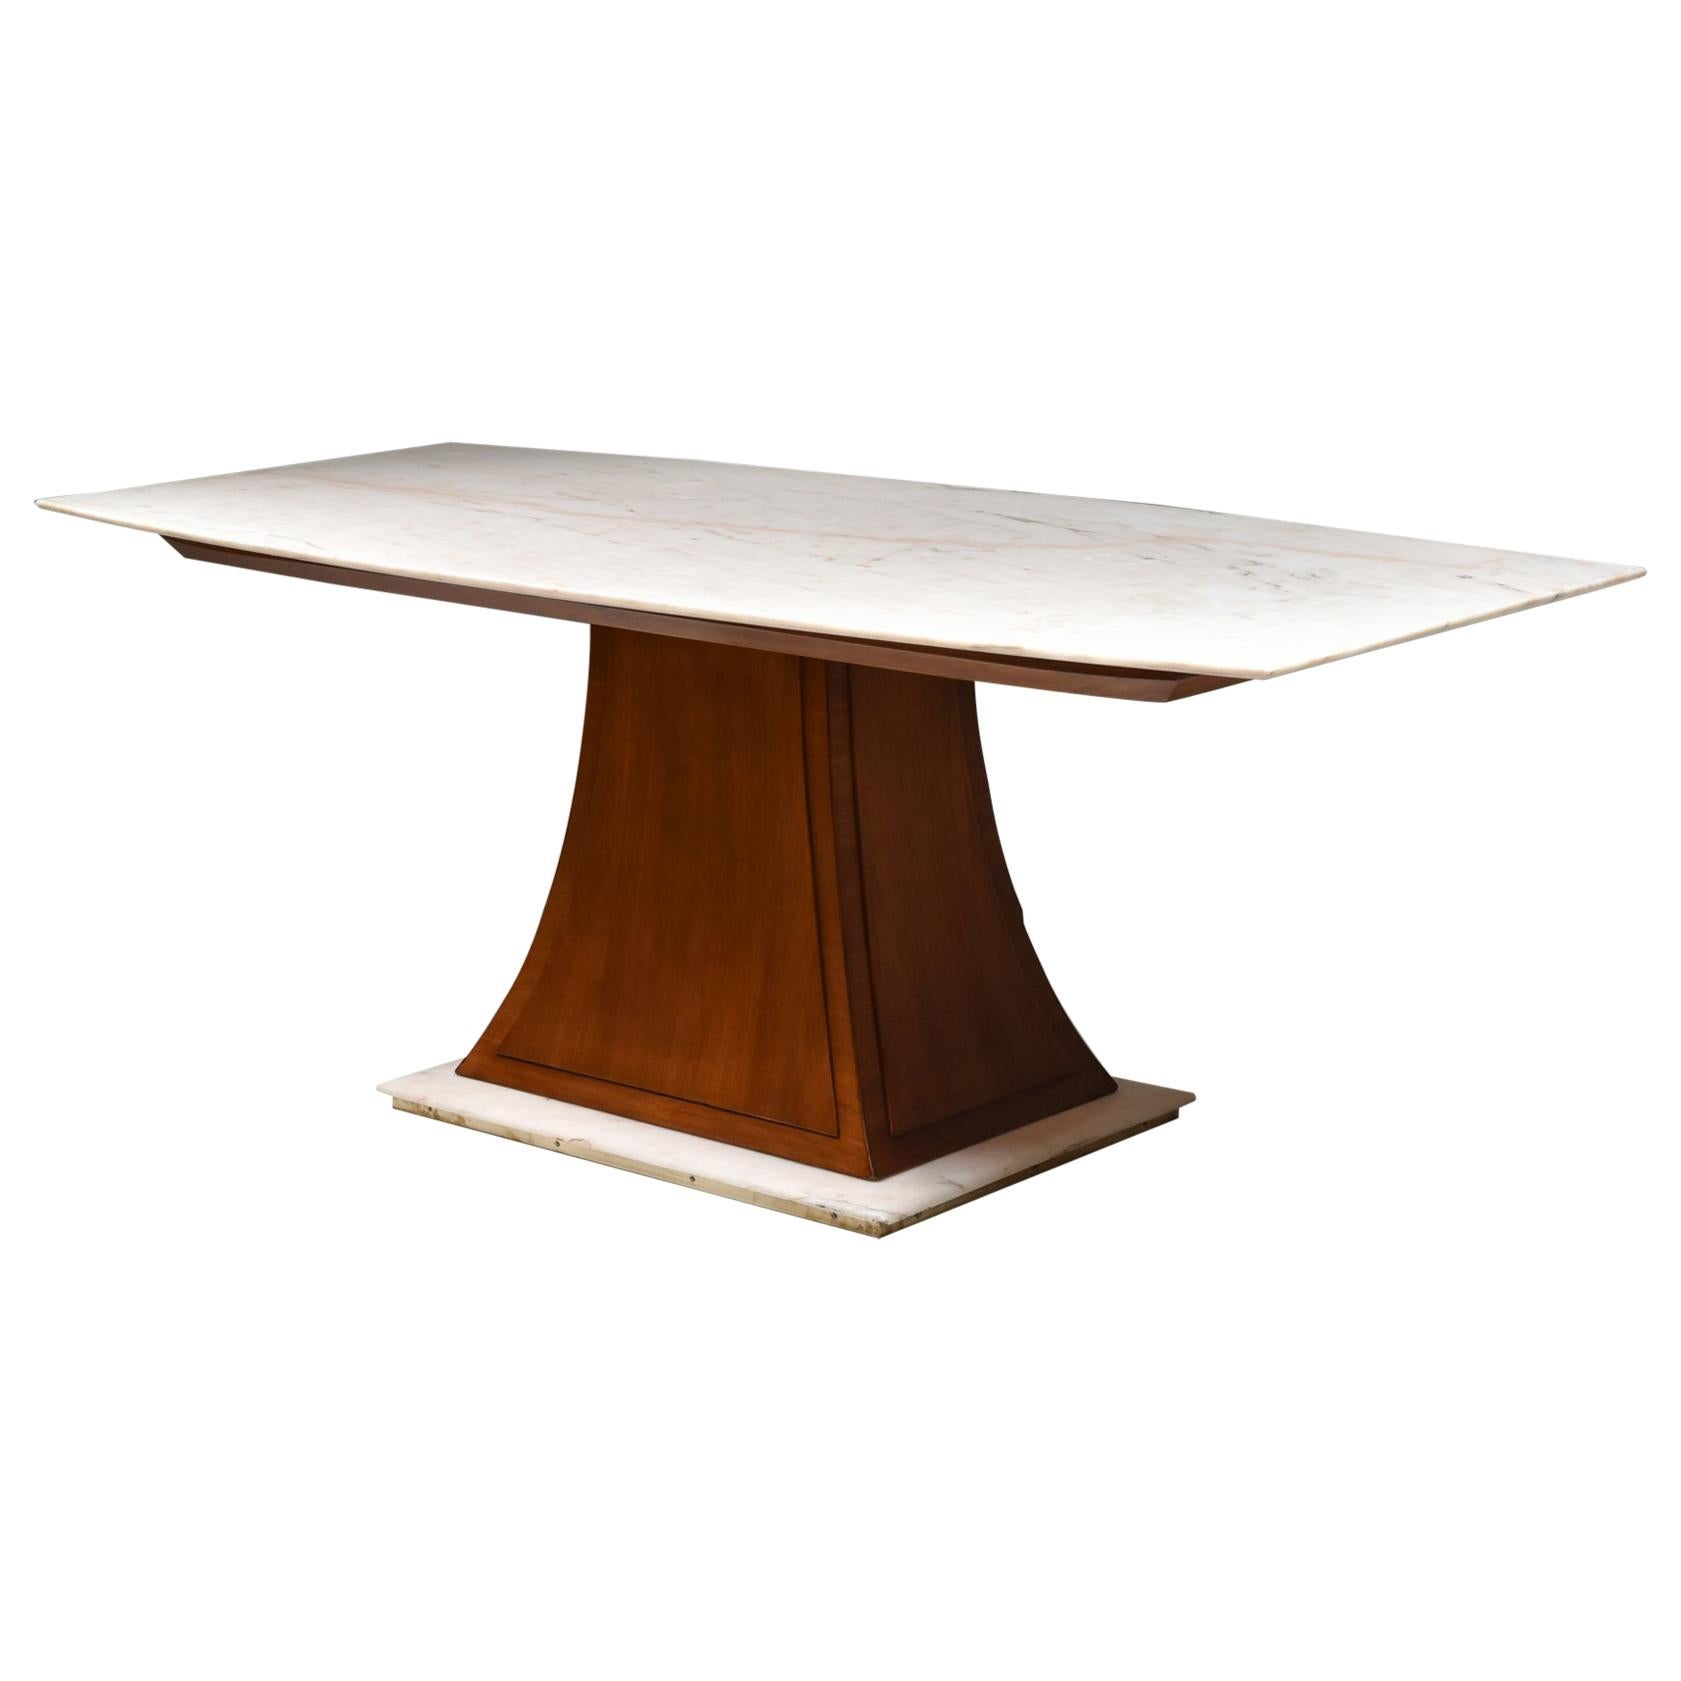 Italian Art Deco Dining Table with Marble Top Japan Inspired